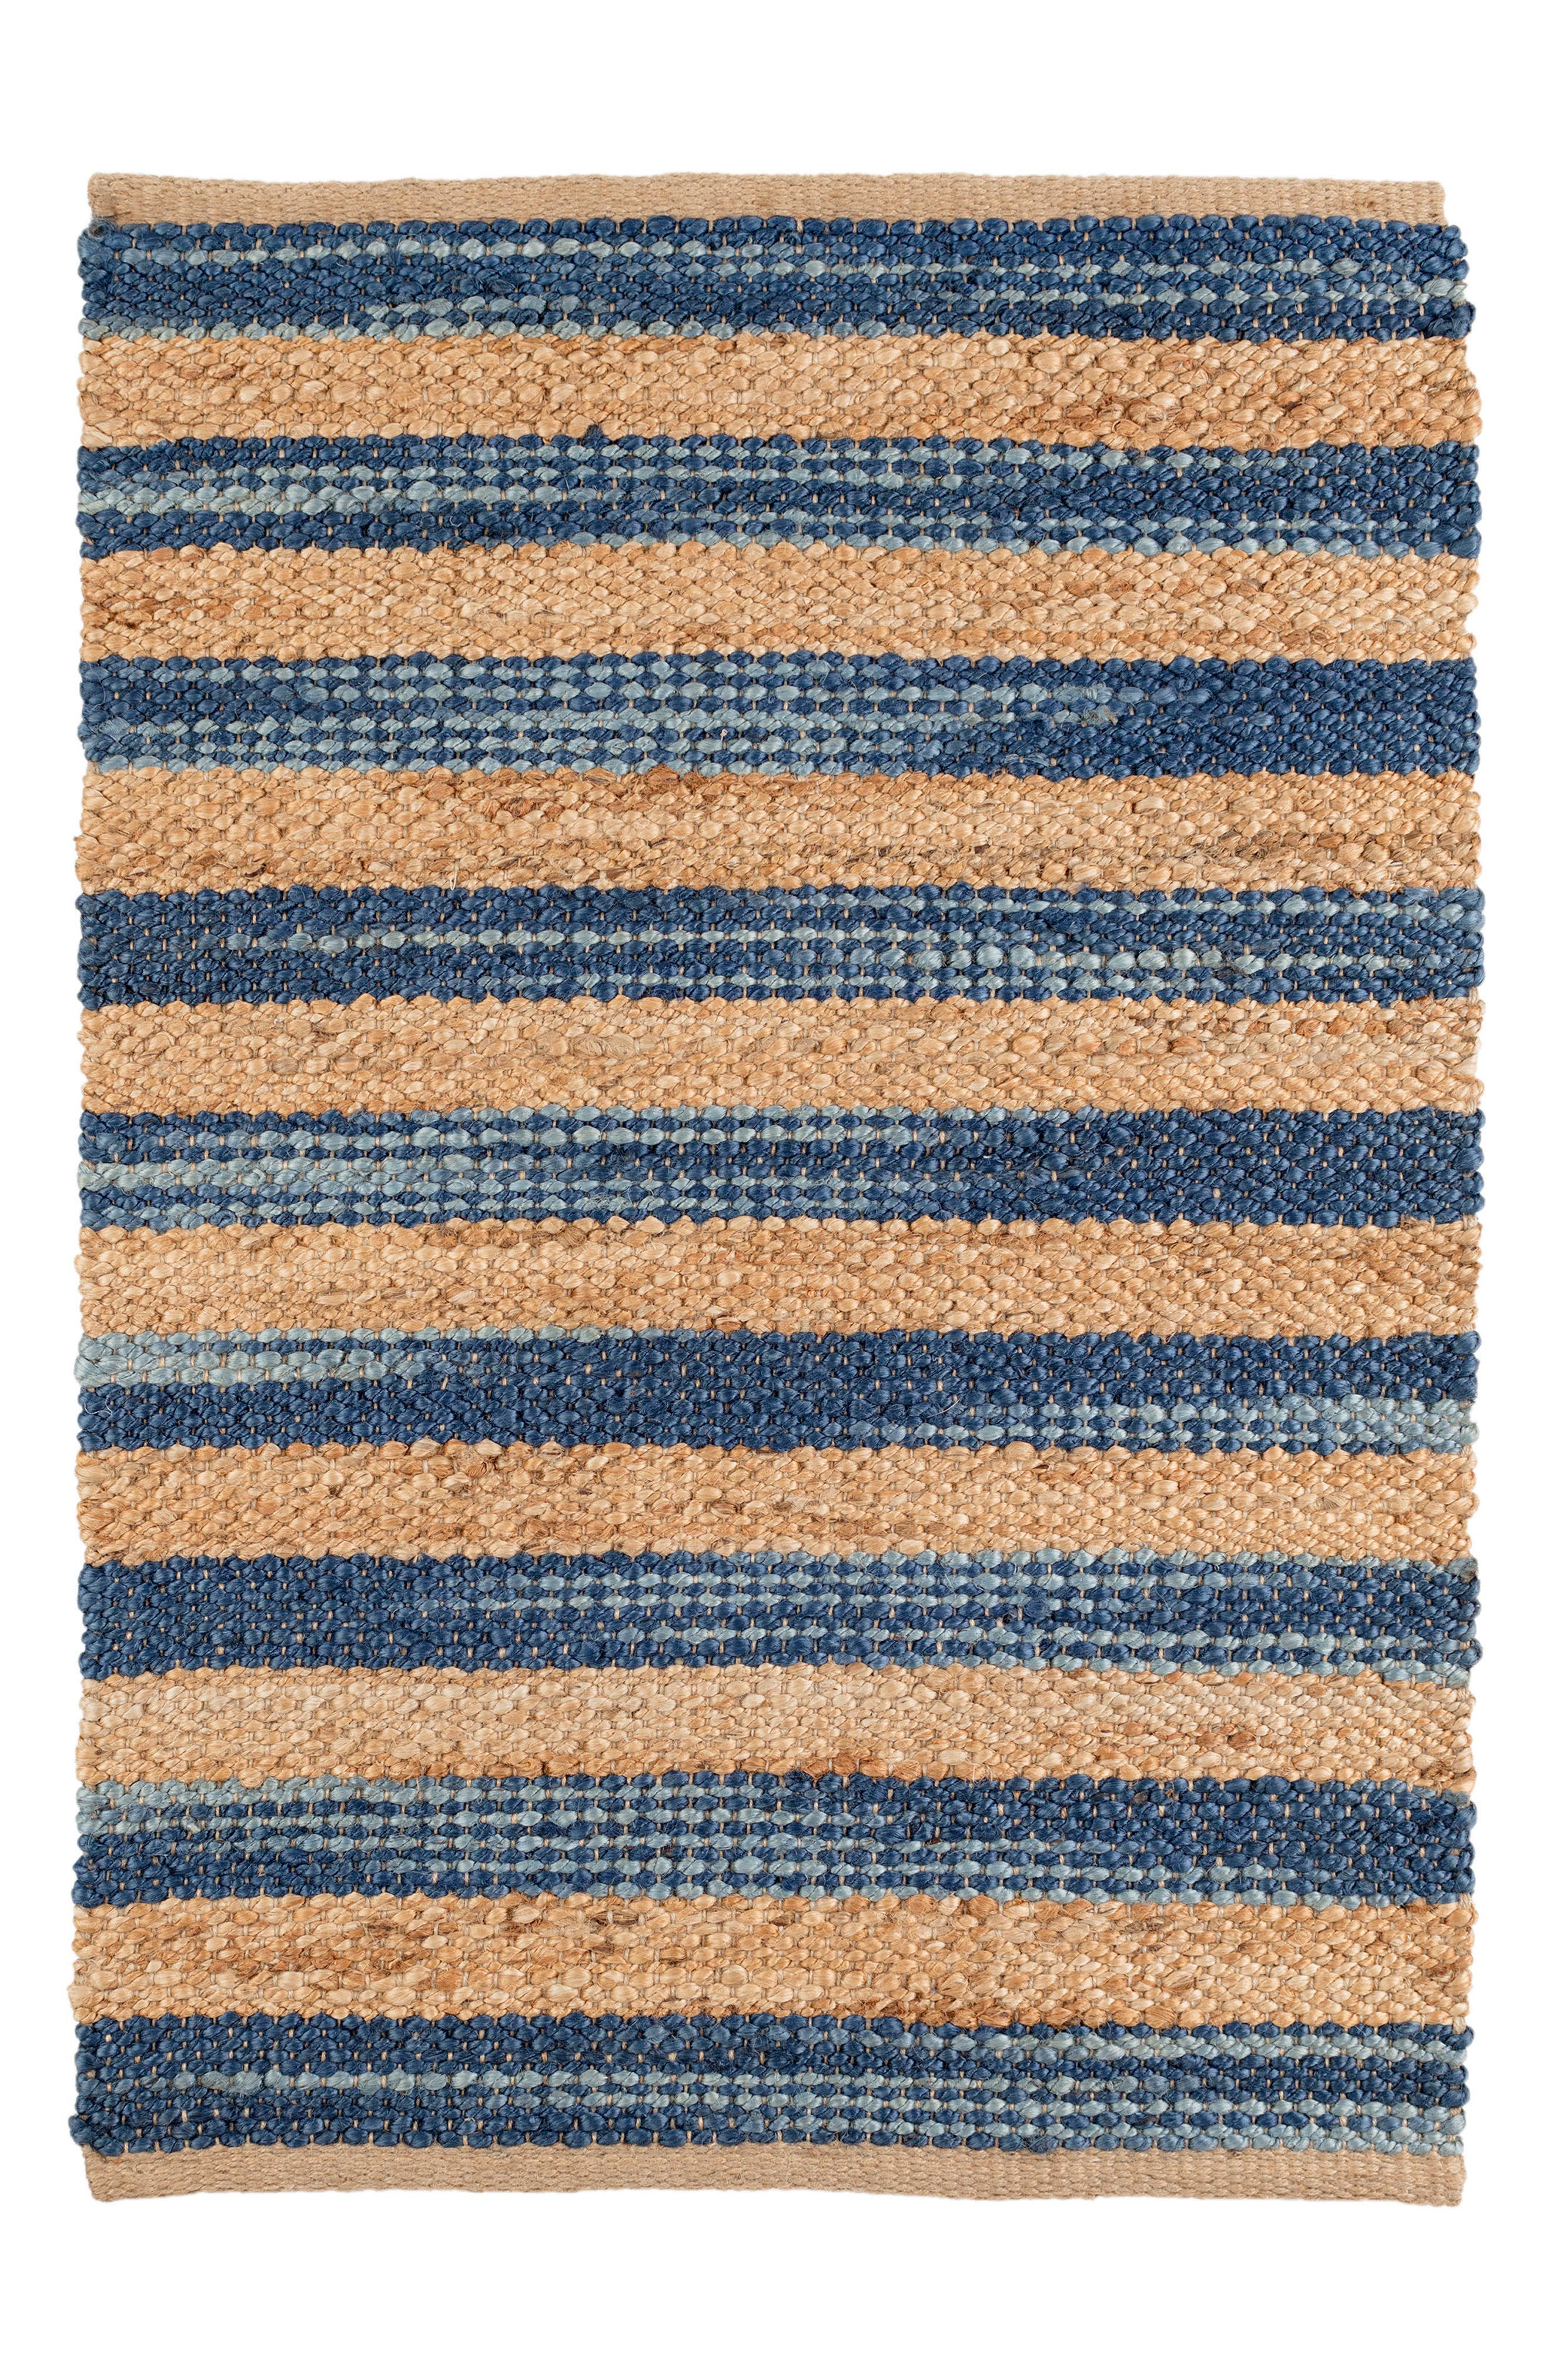 Corfu Woven Wool Rug,                         Main,                         color, BLUE